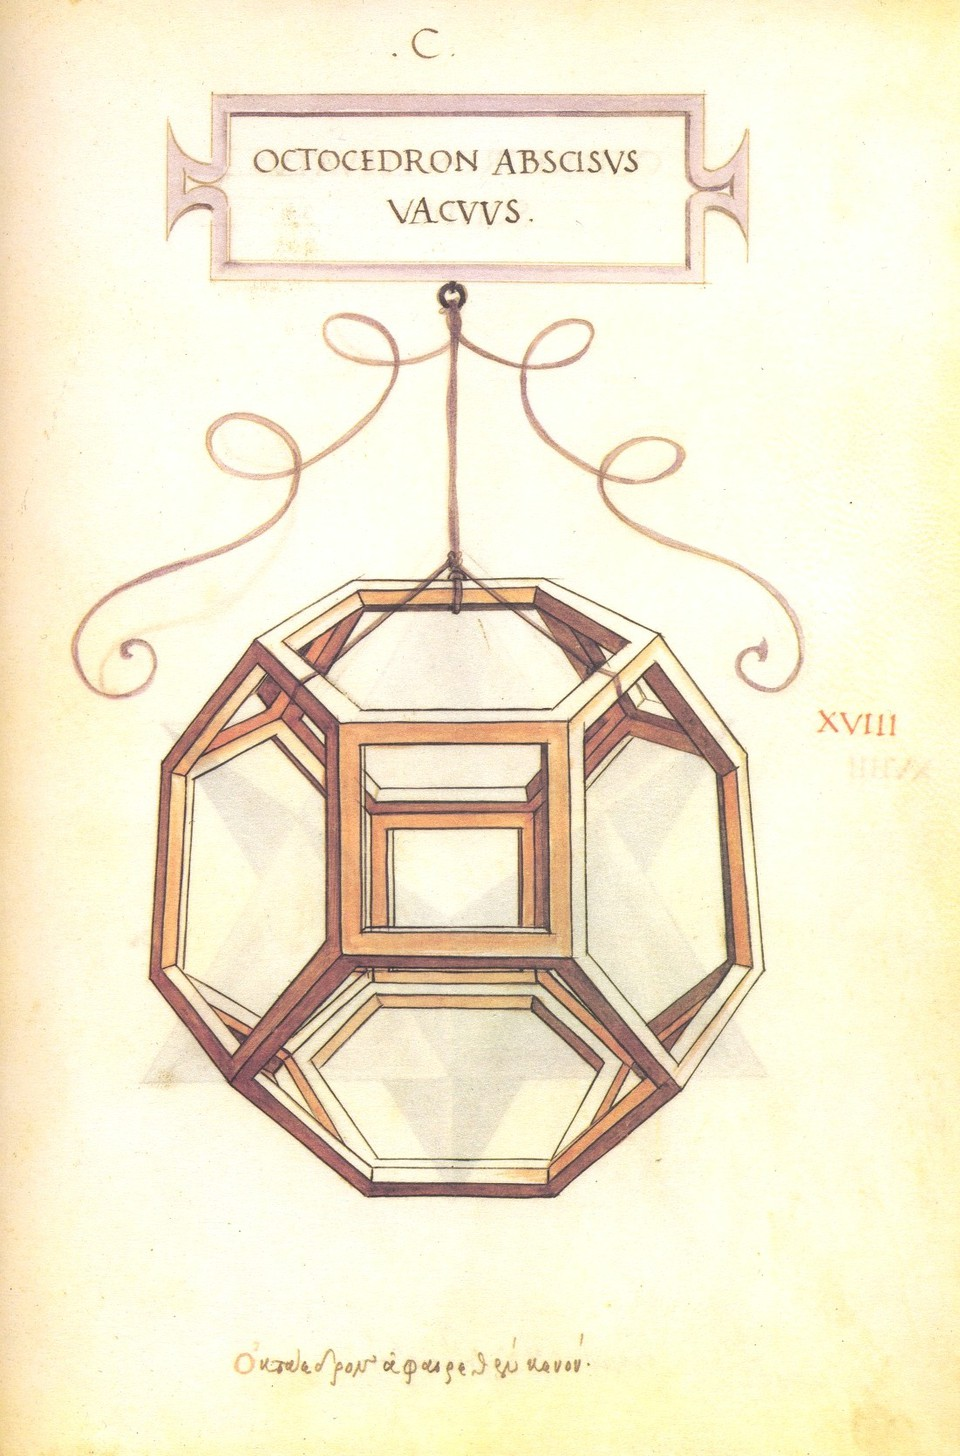 A drawing of a truncated octahedron by Leonardo da Vinci